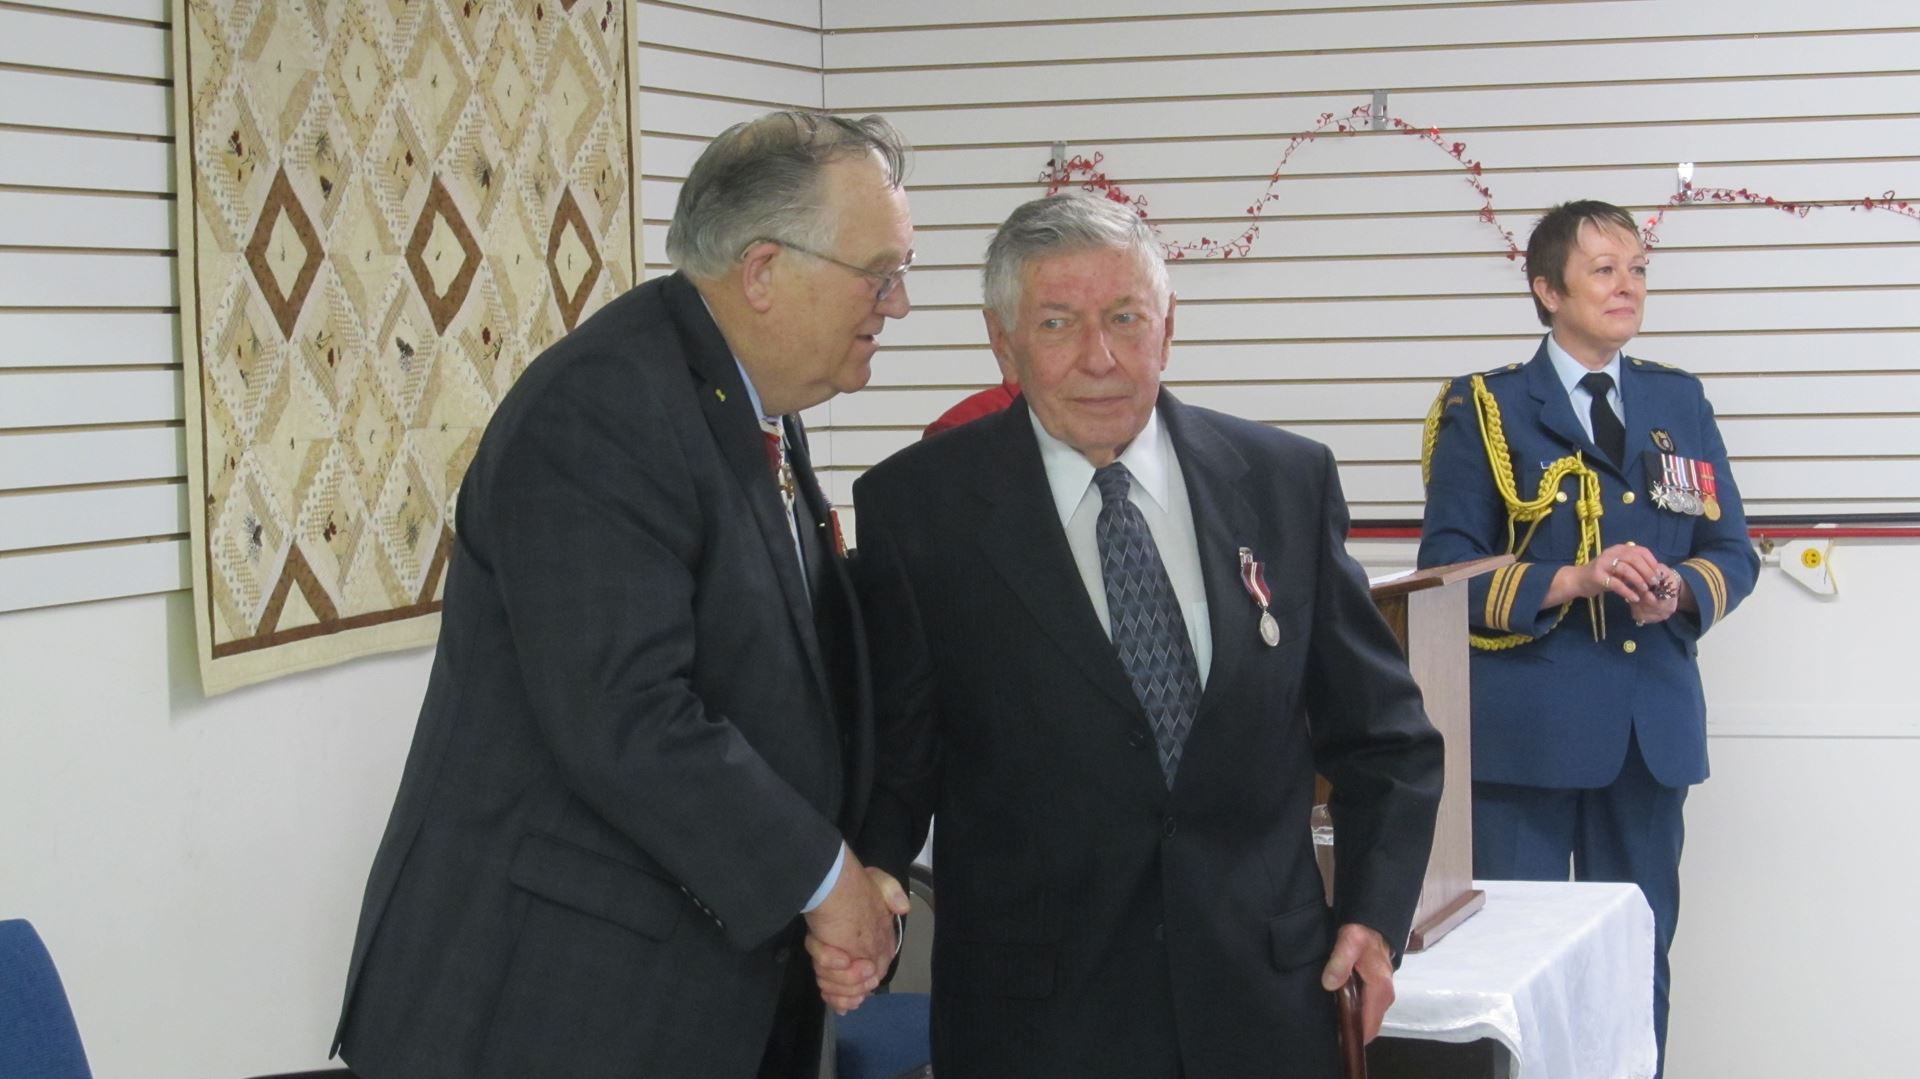 His Honour With Recipient Ken Mcintosh